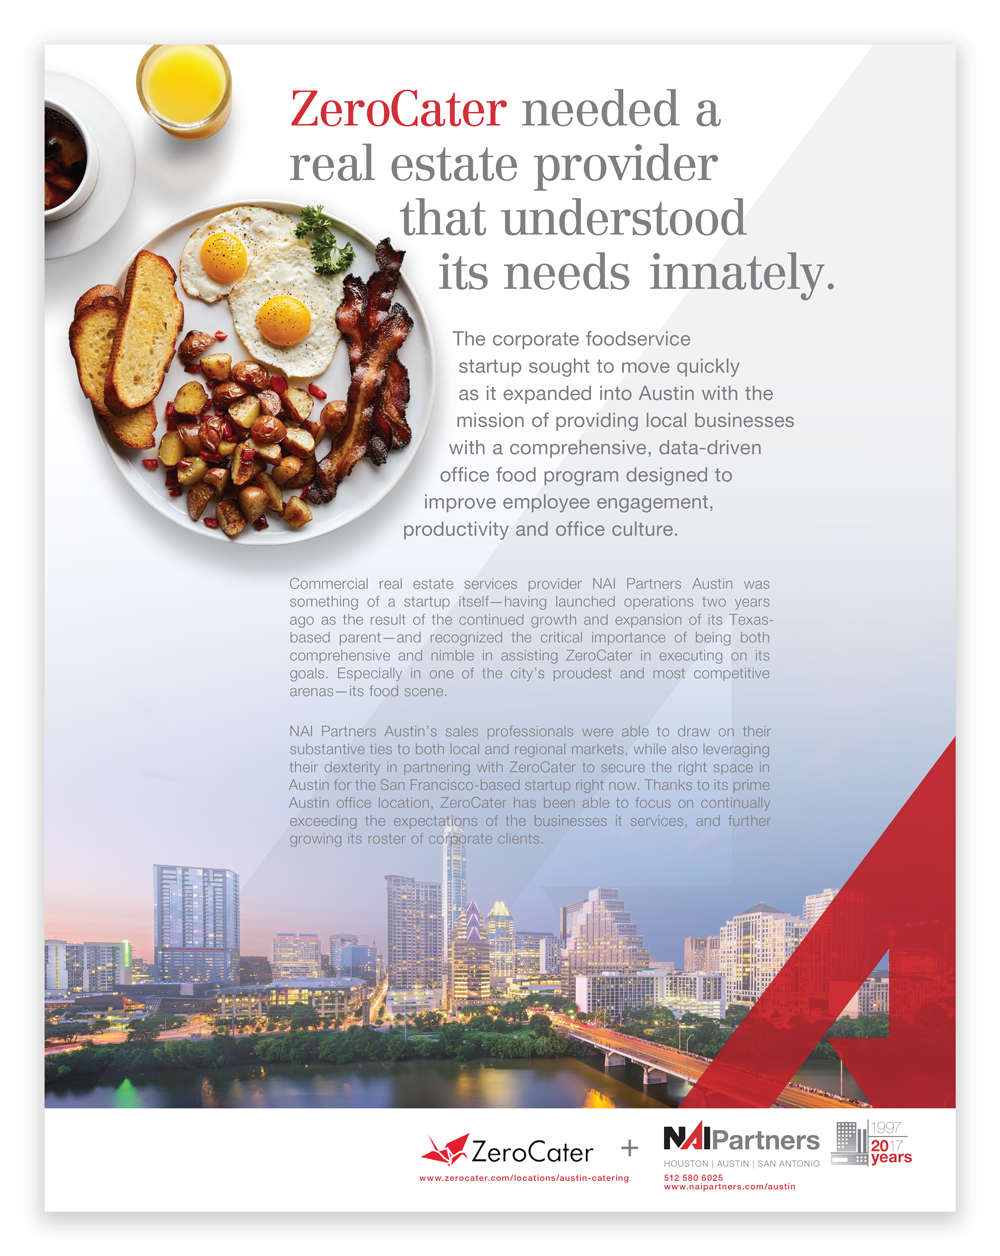 Zero Cater, an Austin foodservice provider teamed up with commercial real estate company, NAI Partners